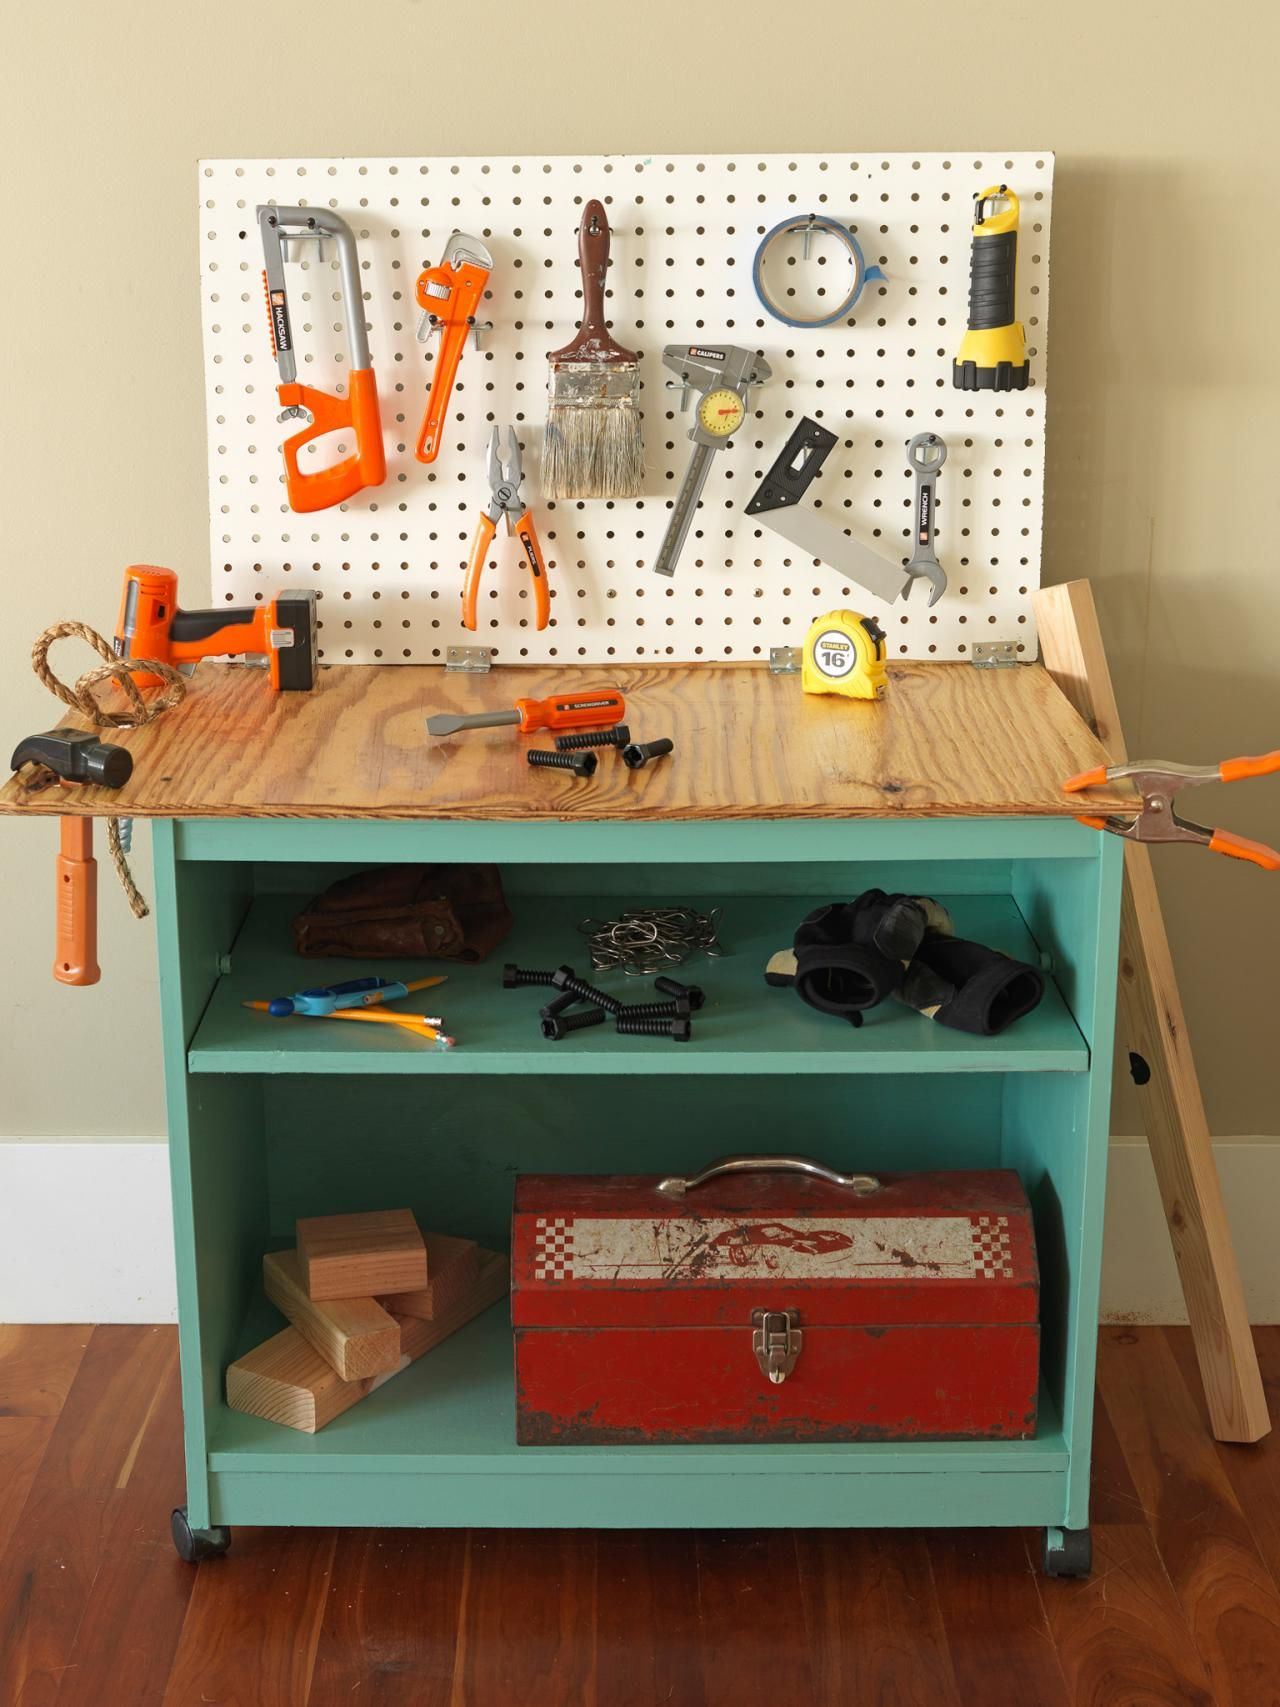 How to Turn Old Furniture Into a Kids Toy Workbench